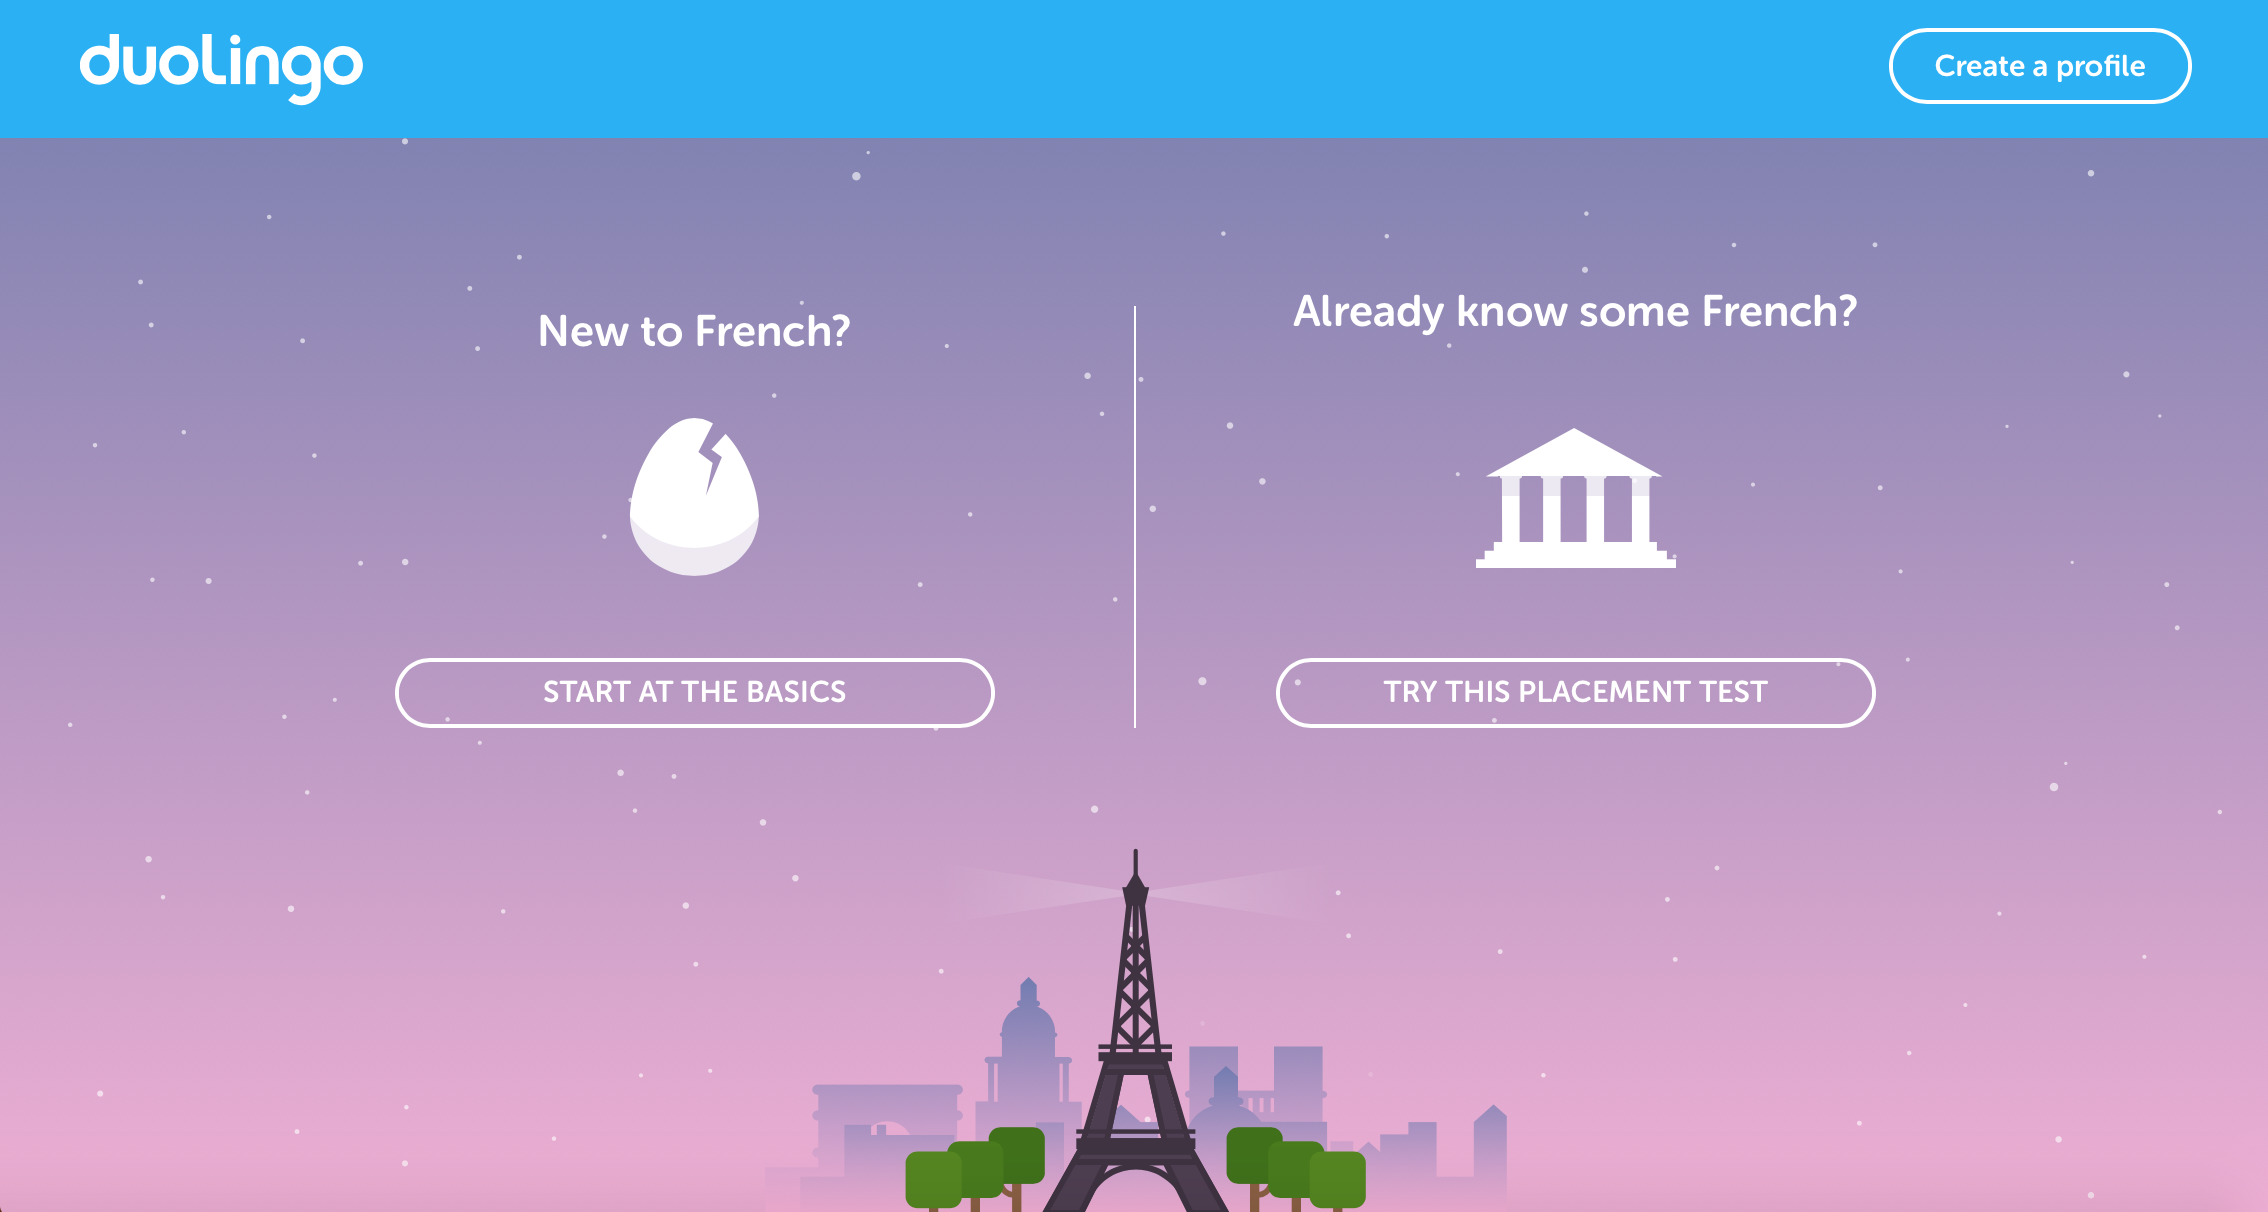 A screenshot of duolingo's personalized user journey